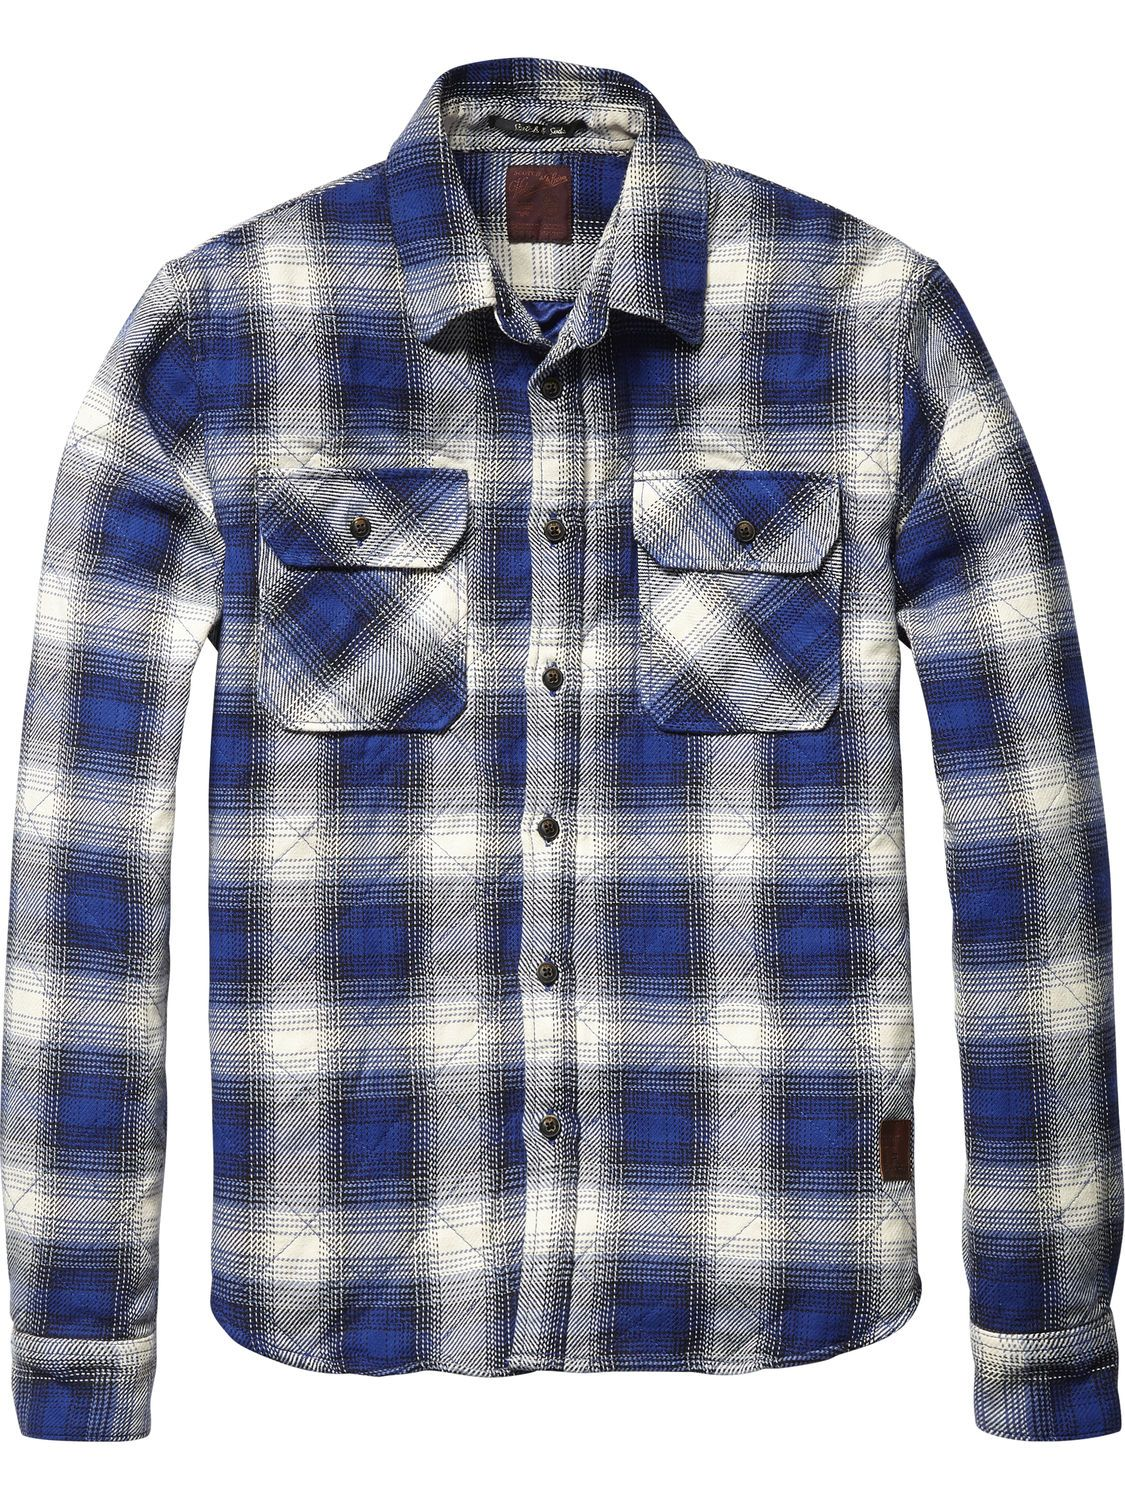 Quilted flannel shirt jacket  Quilted Flannel Shirt Jacket  Shirt ls  Menus Clothing at Scotch